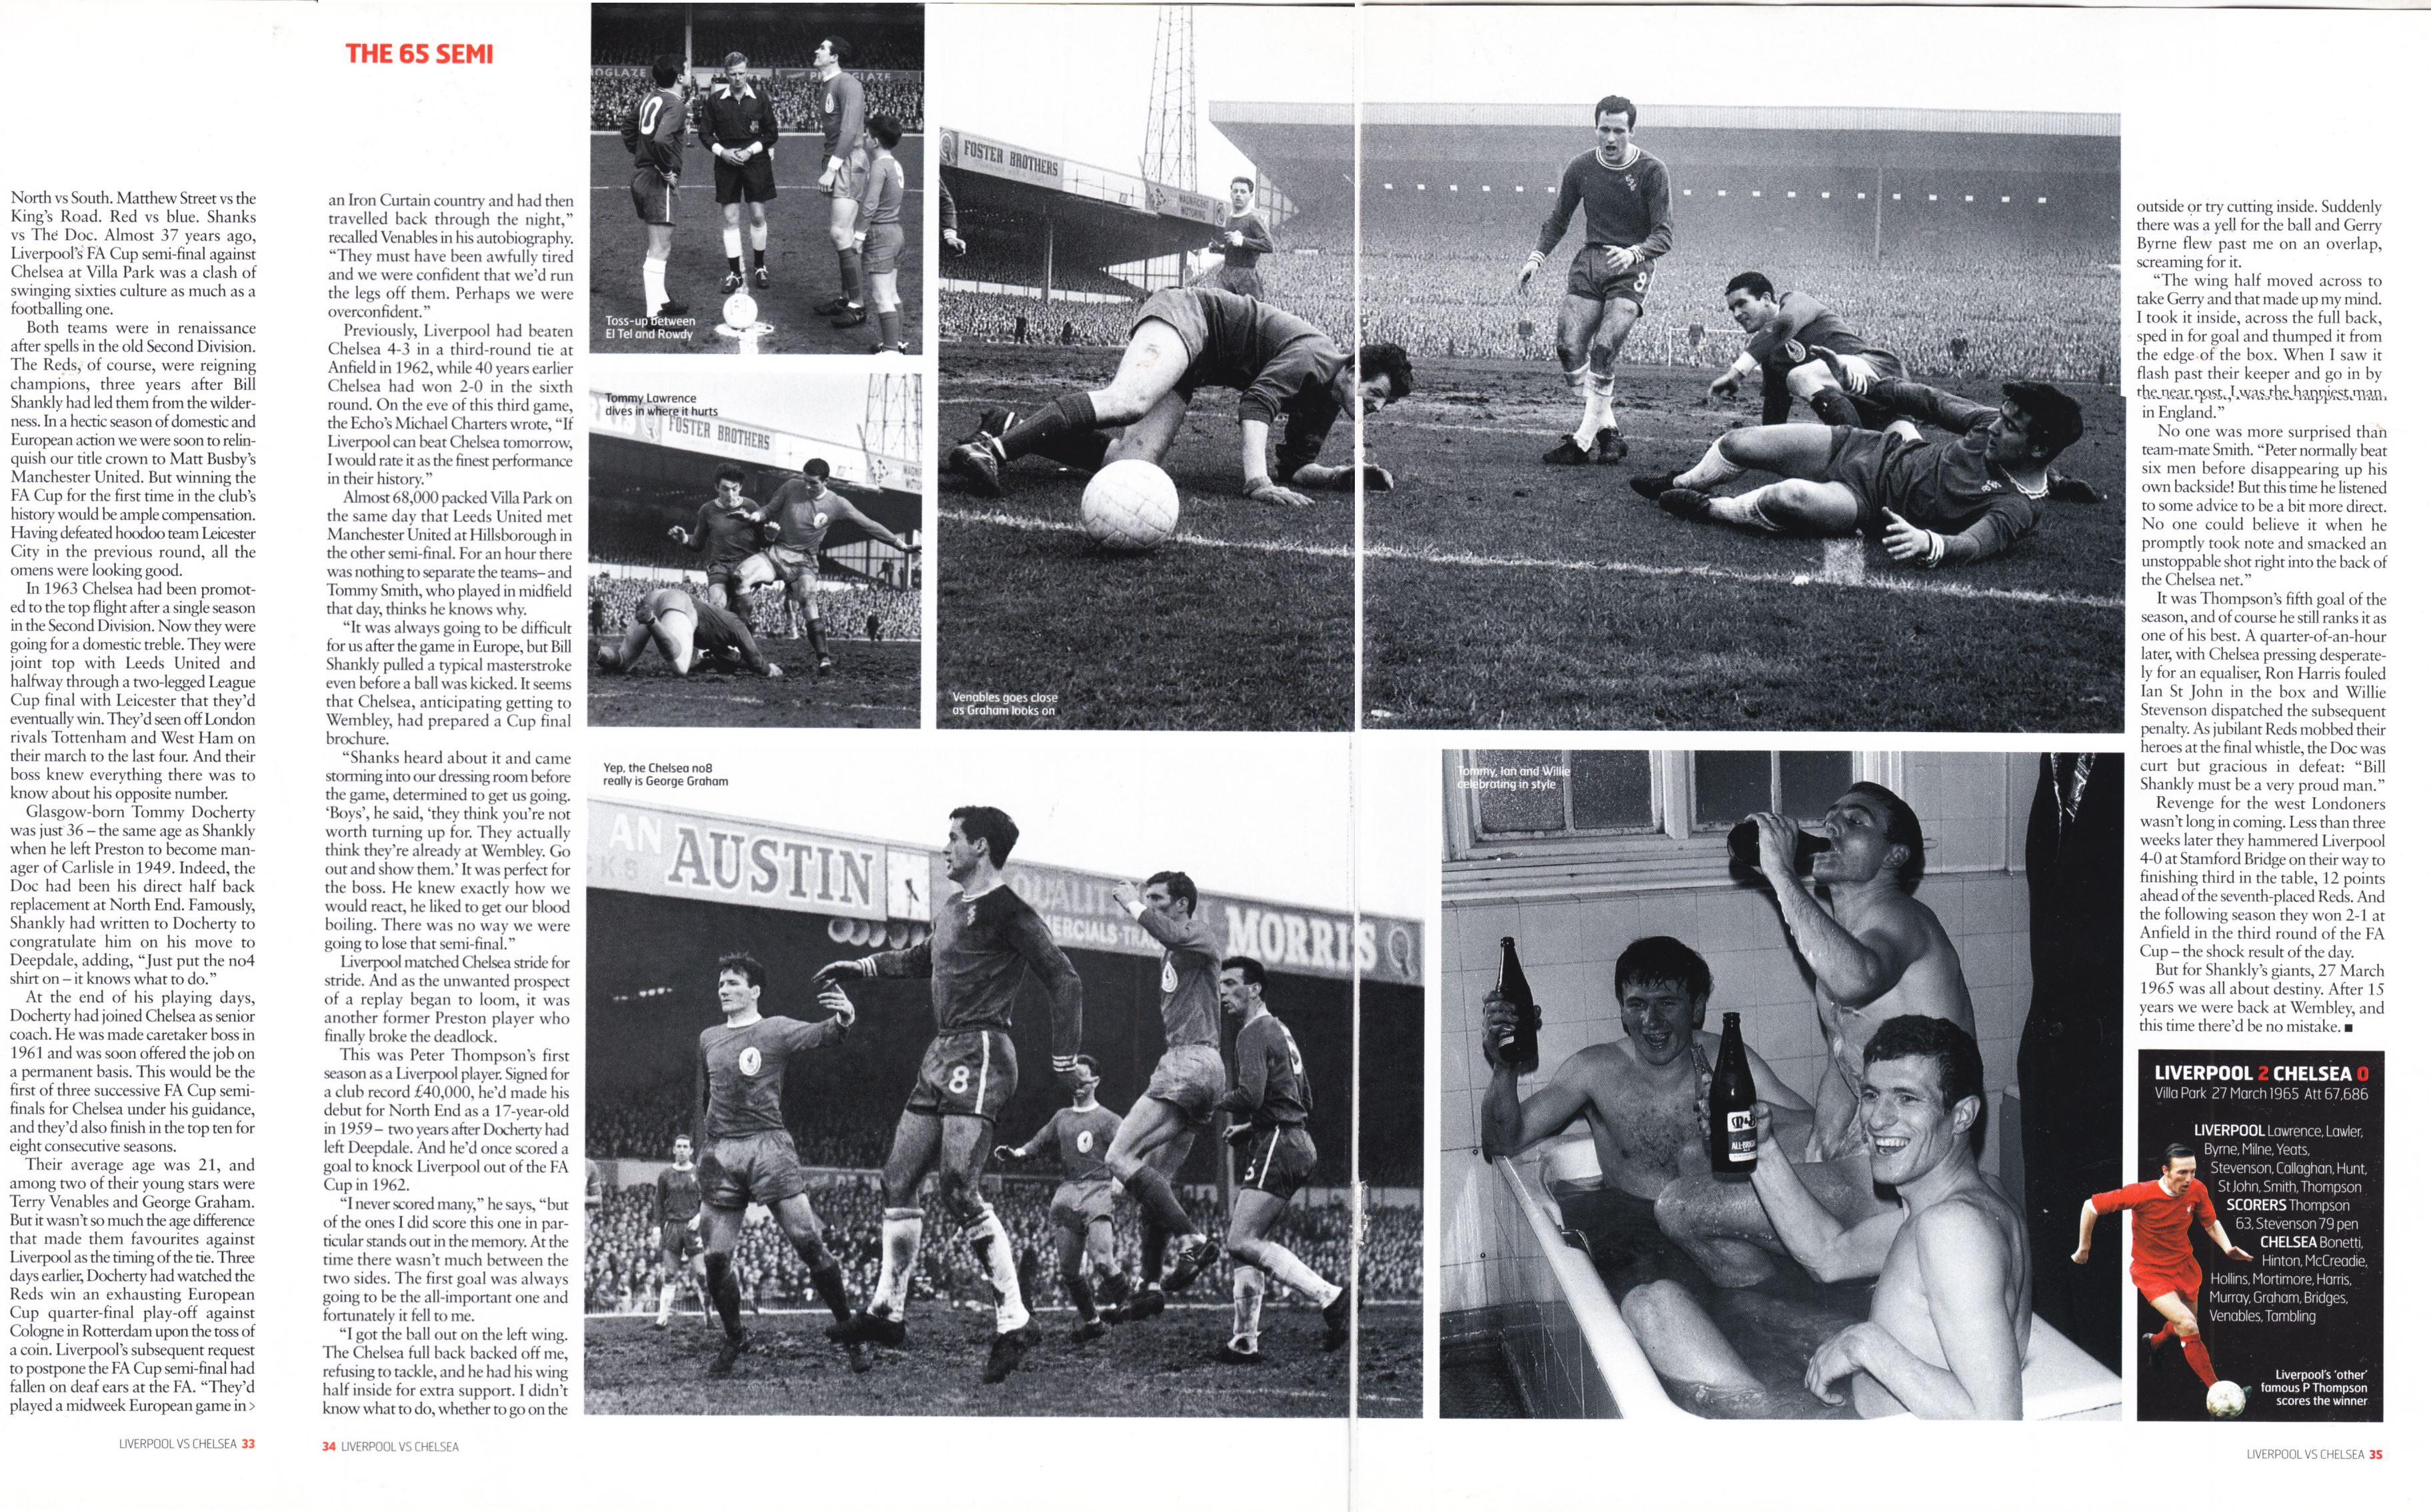 Liverpool's victory over Chelsea in 65 semi - LFC Official Matchday Magazine